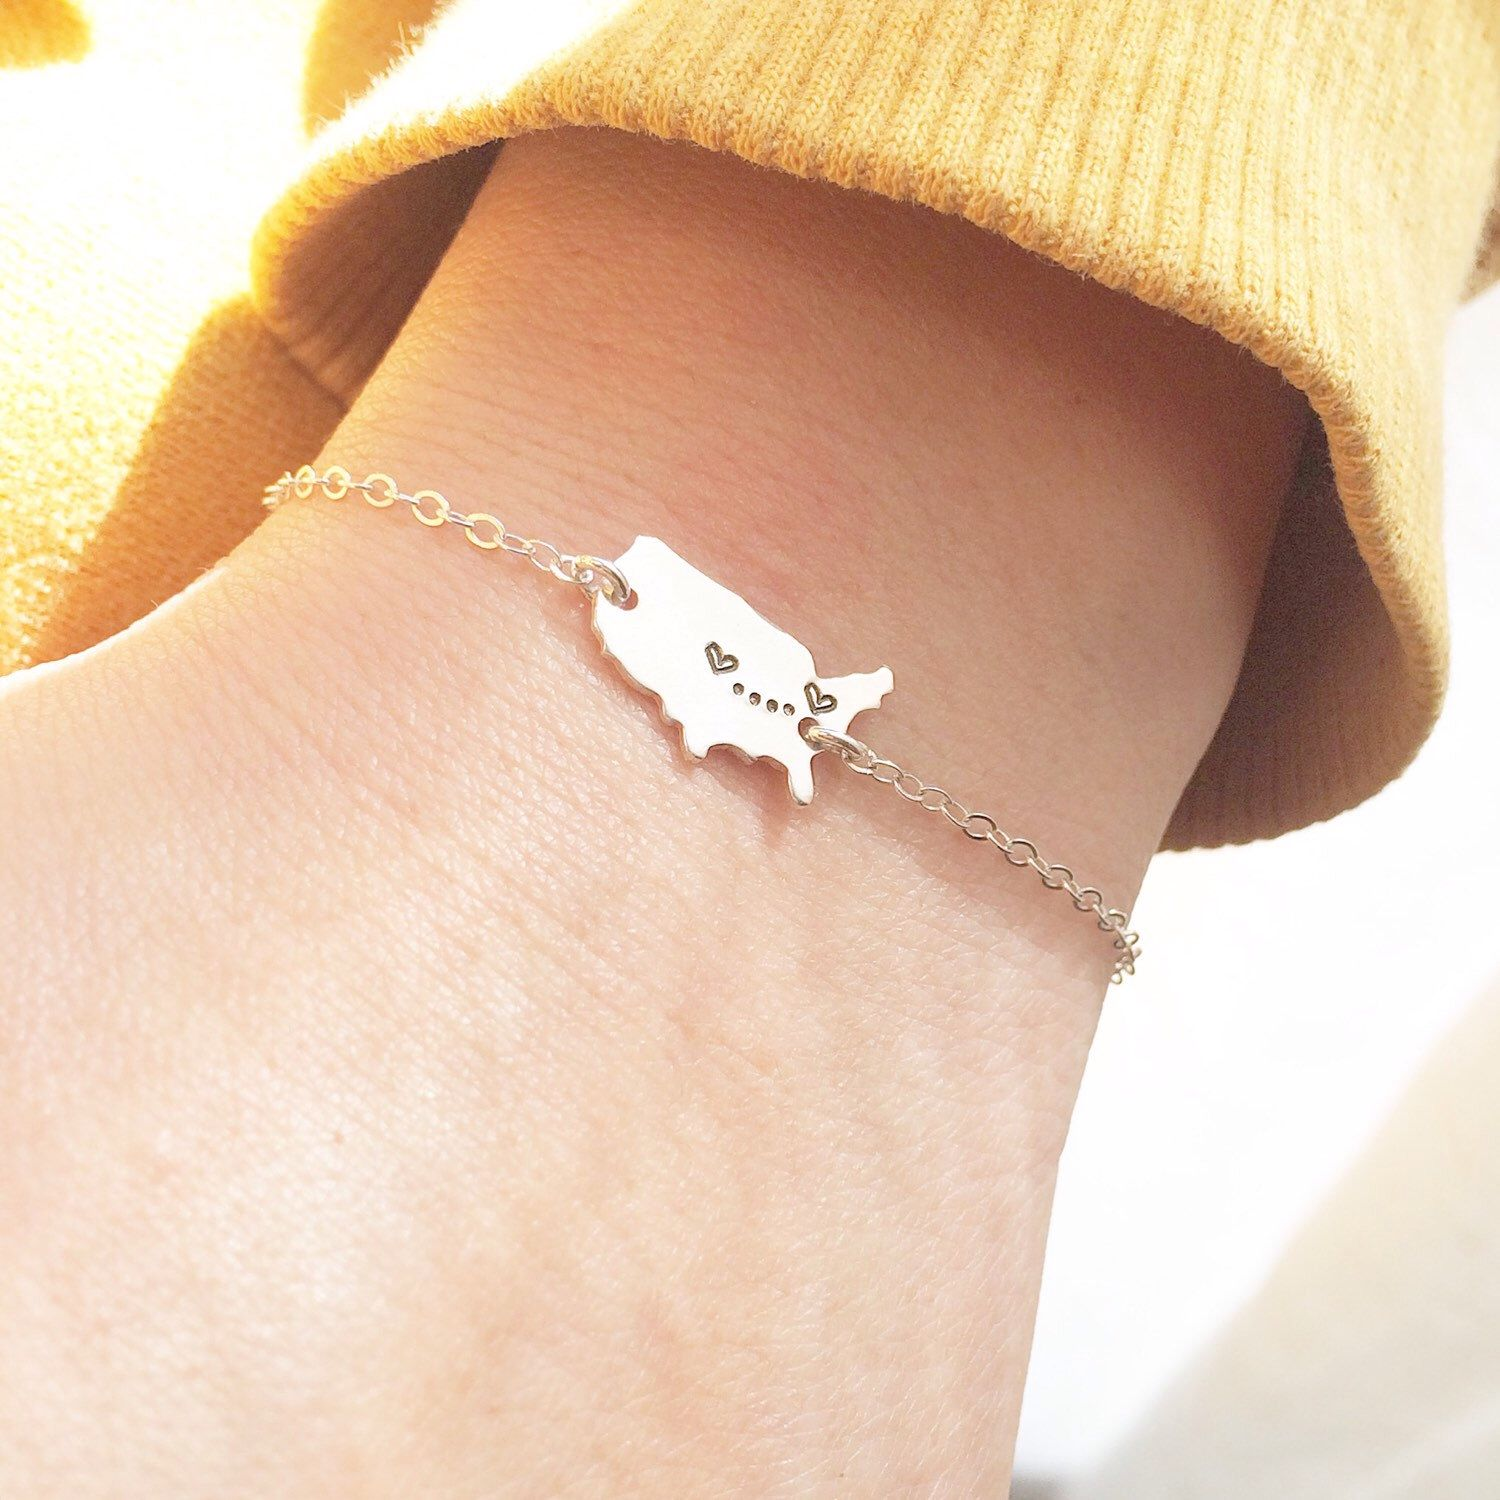 State Bracelet United States Map With